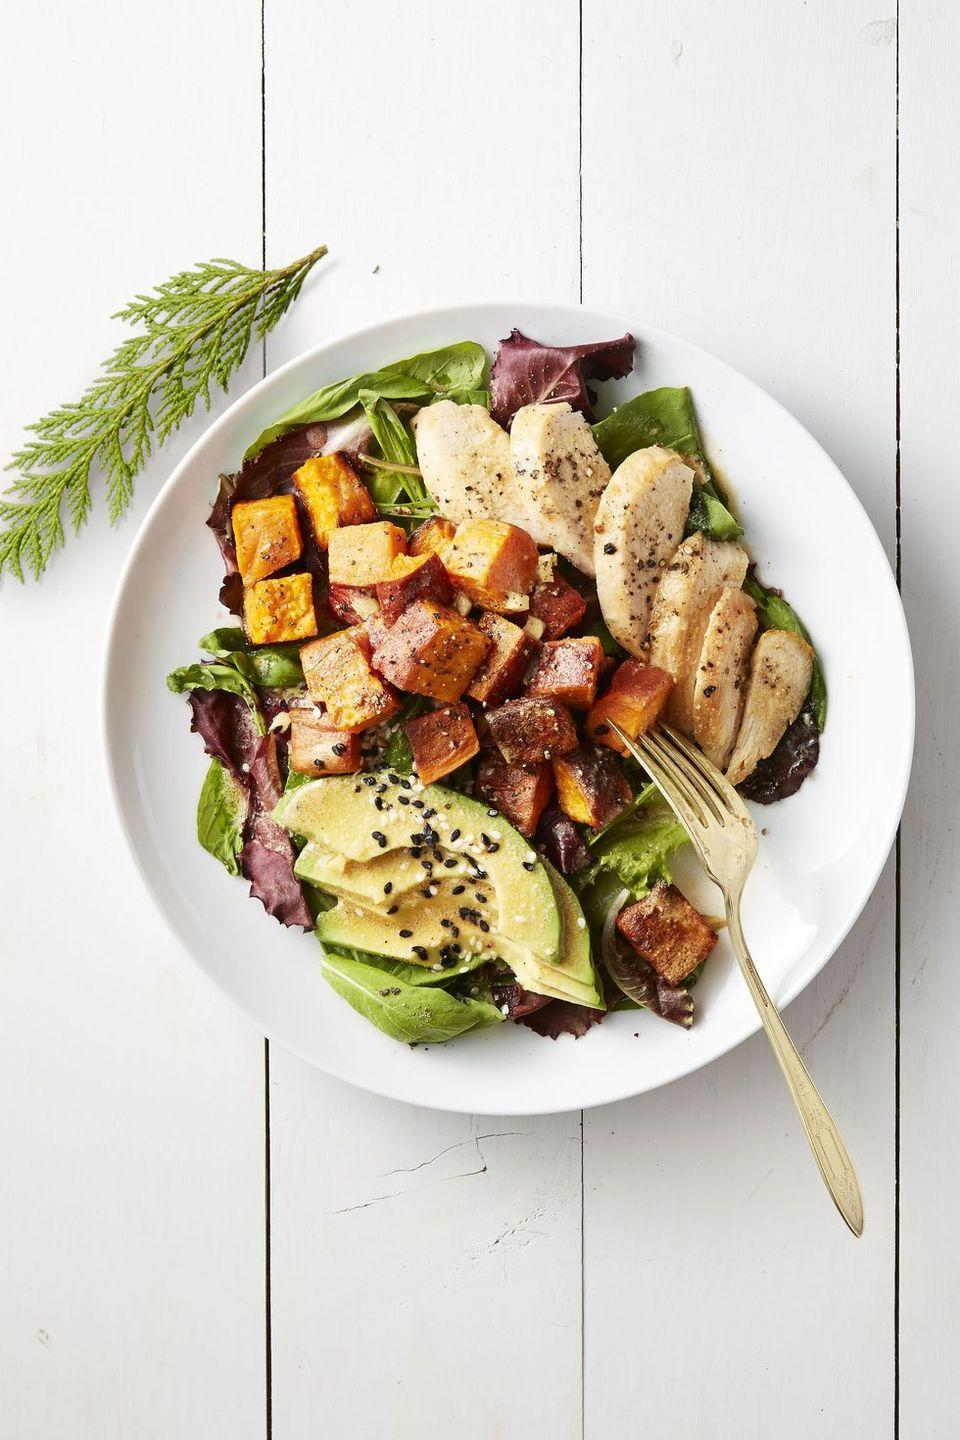 """<p>Use up two leftovers in one flavor-packed dish by piling your turkey and roasted veggies onto one hearty fall salad.</p><p><em><a href=""""https://www.goodhousekeeping.com/food-recipes/easy/a42180/roasted-sweet-potato-and-chicken-salad-recipe/"""" rel=""""nofollow noopener"""" target=""""_blank"""" data-ylk=""""slk:Get the recipe for Roasted Sweet Potato and Turkey Salad »"""" class=""""link rapid-noclick-resp"""">Get the recipe for Roasted Sweet Potato and Turkey Salad »</a></em></p><p><strong>RELATED:</strong> <a href=""""https://www.goodhousekeeping.com/food-recipes/easy/g28006549/easy-fall-salads/"""" rel=""""nofollow noopener"""" target=""""_blank"""" data-ylk=""""slk:20 Easy Fall Salads to Make the Most of Harvest Season"""" class=""""link rapid-noclick-resp"""">20 Easy Fall Salads to Make the Most of Harvest Season</a></p>"""